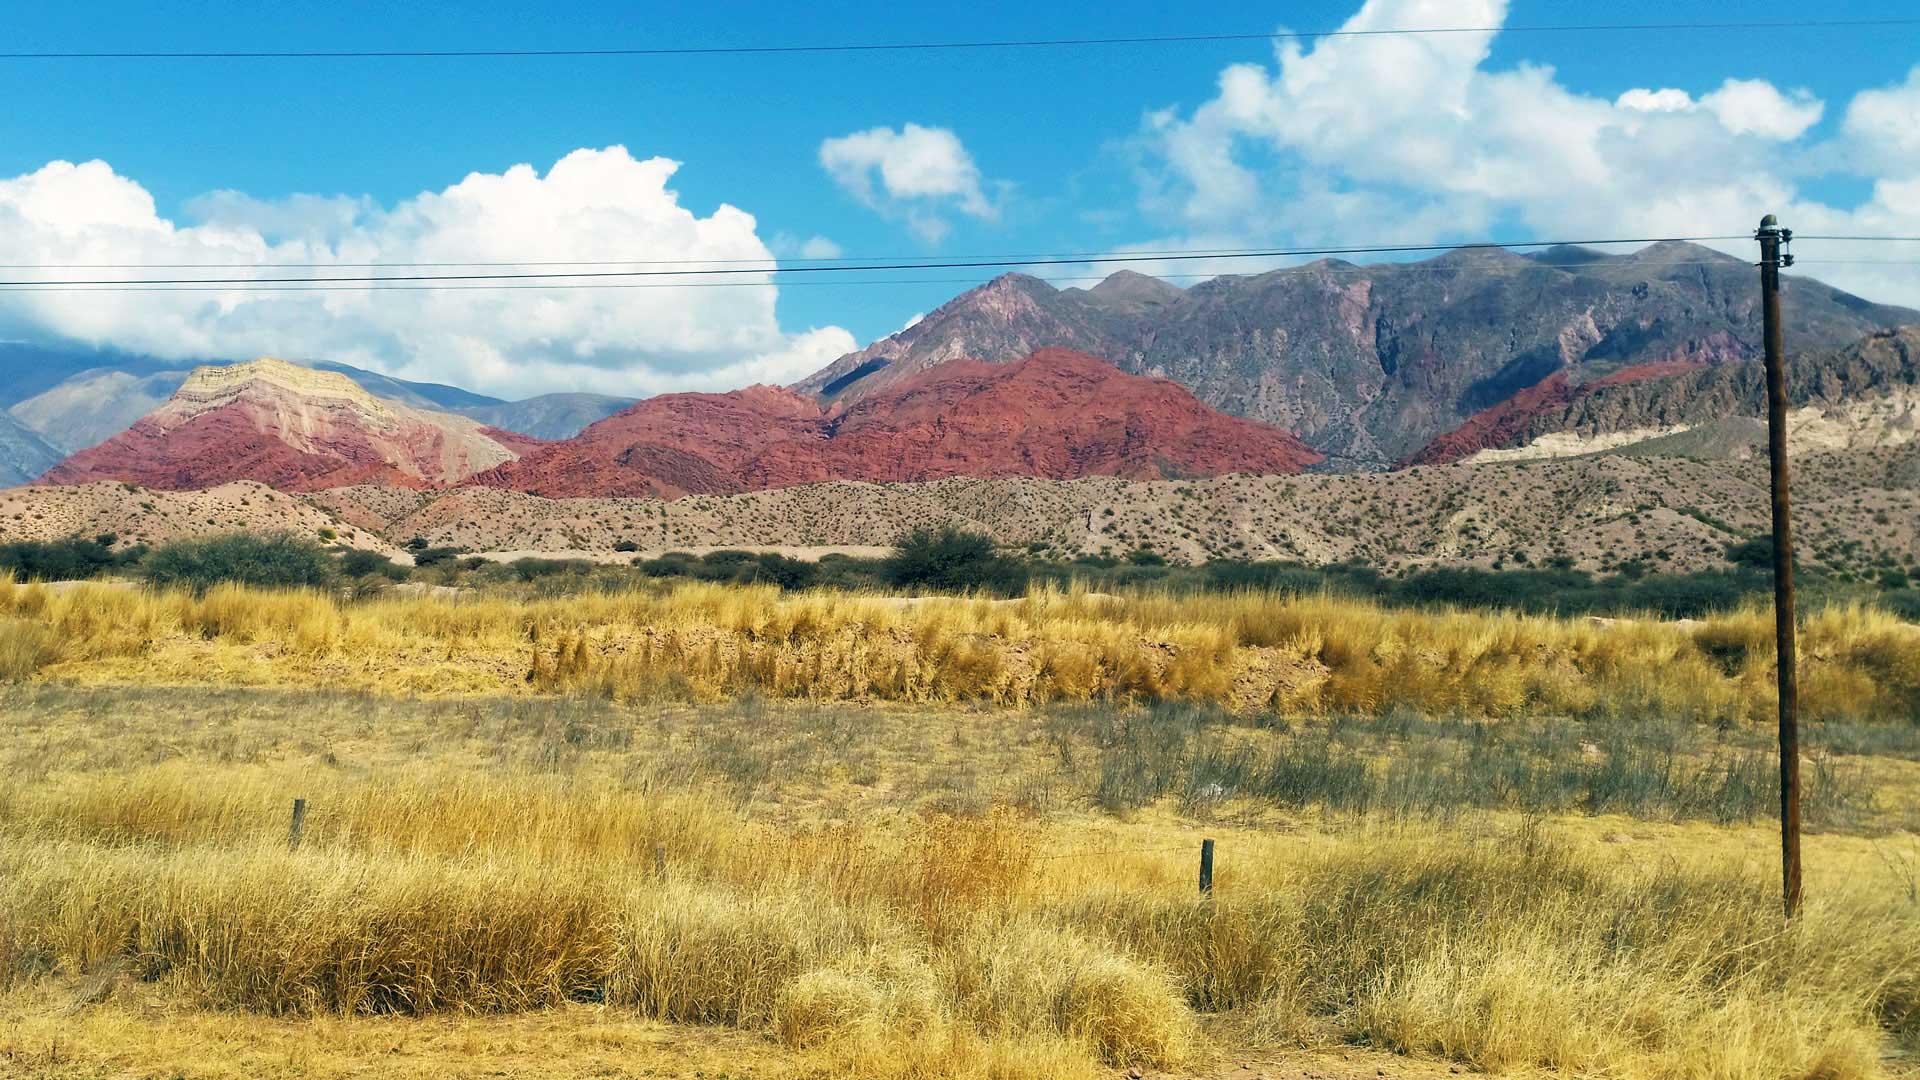 Taken from the 1 hour bus ride from Humahuaca to Tilcara.  Photo by Ovidiu Balaj